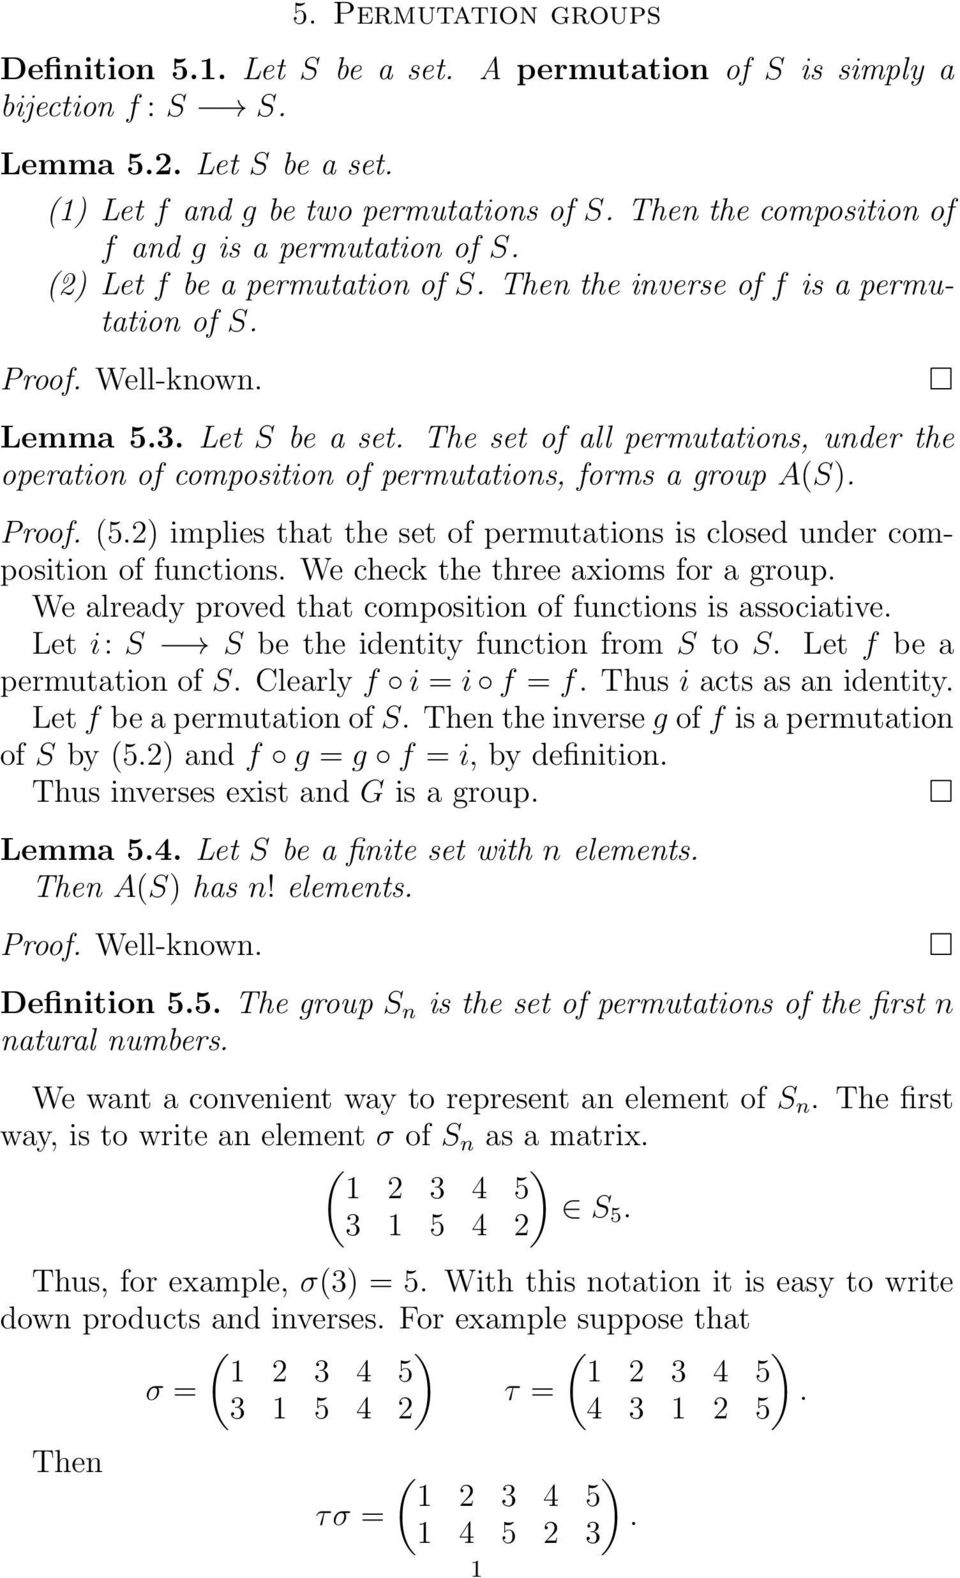 of permutations, forms a group A(S) Proof (52) implies that the set of permutations is closed under composition of functions We check the three axioms for a group We already proved that composition